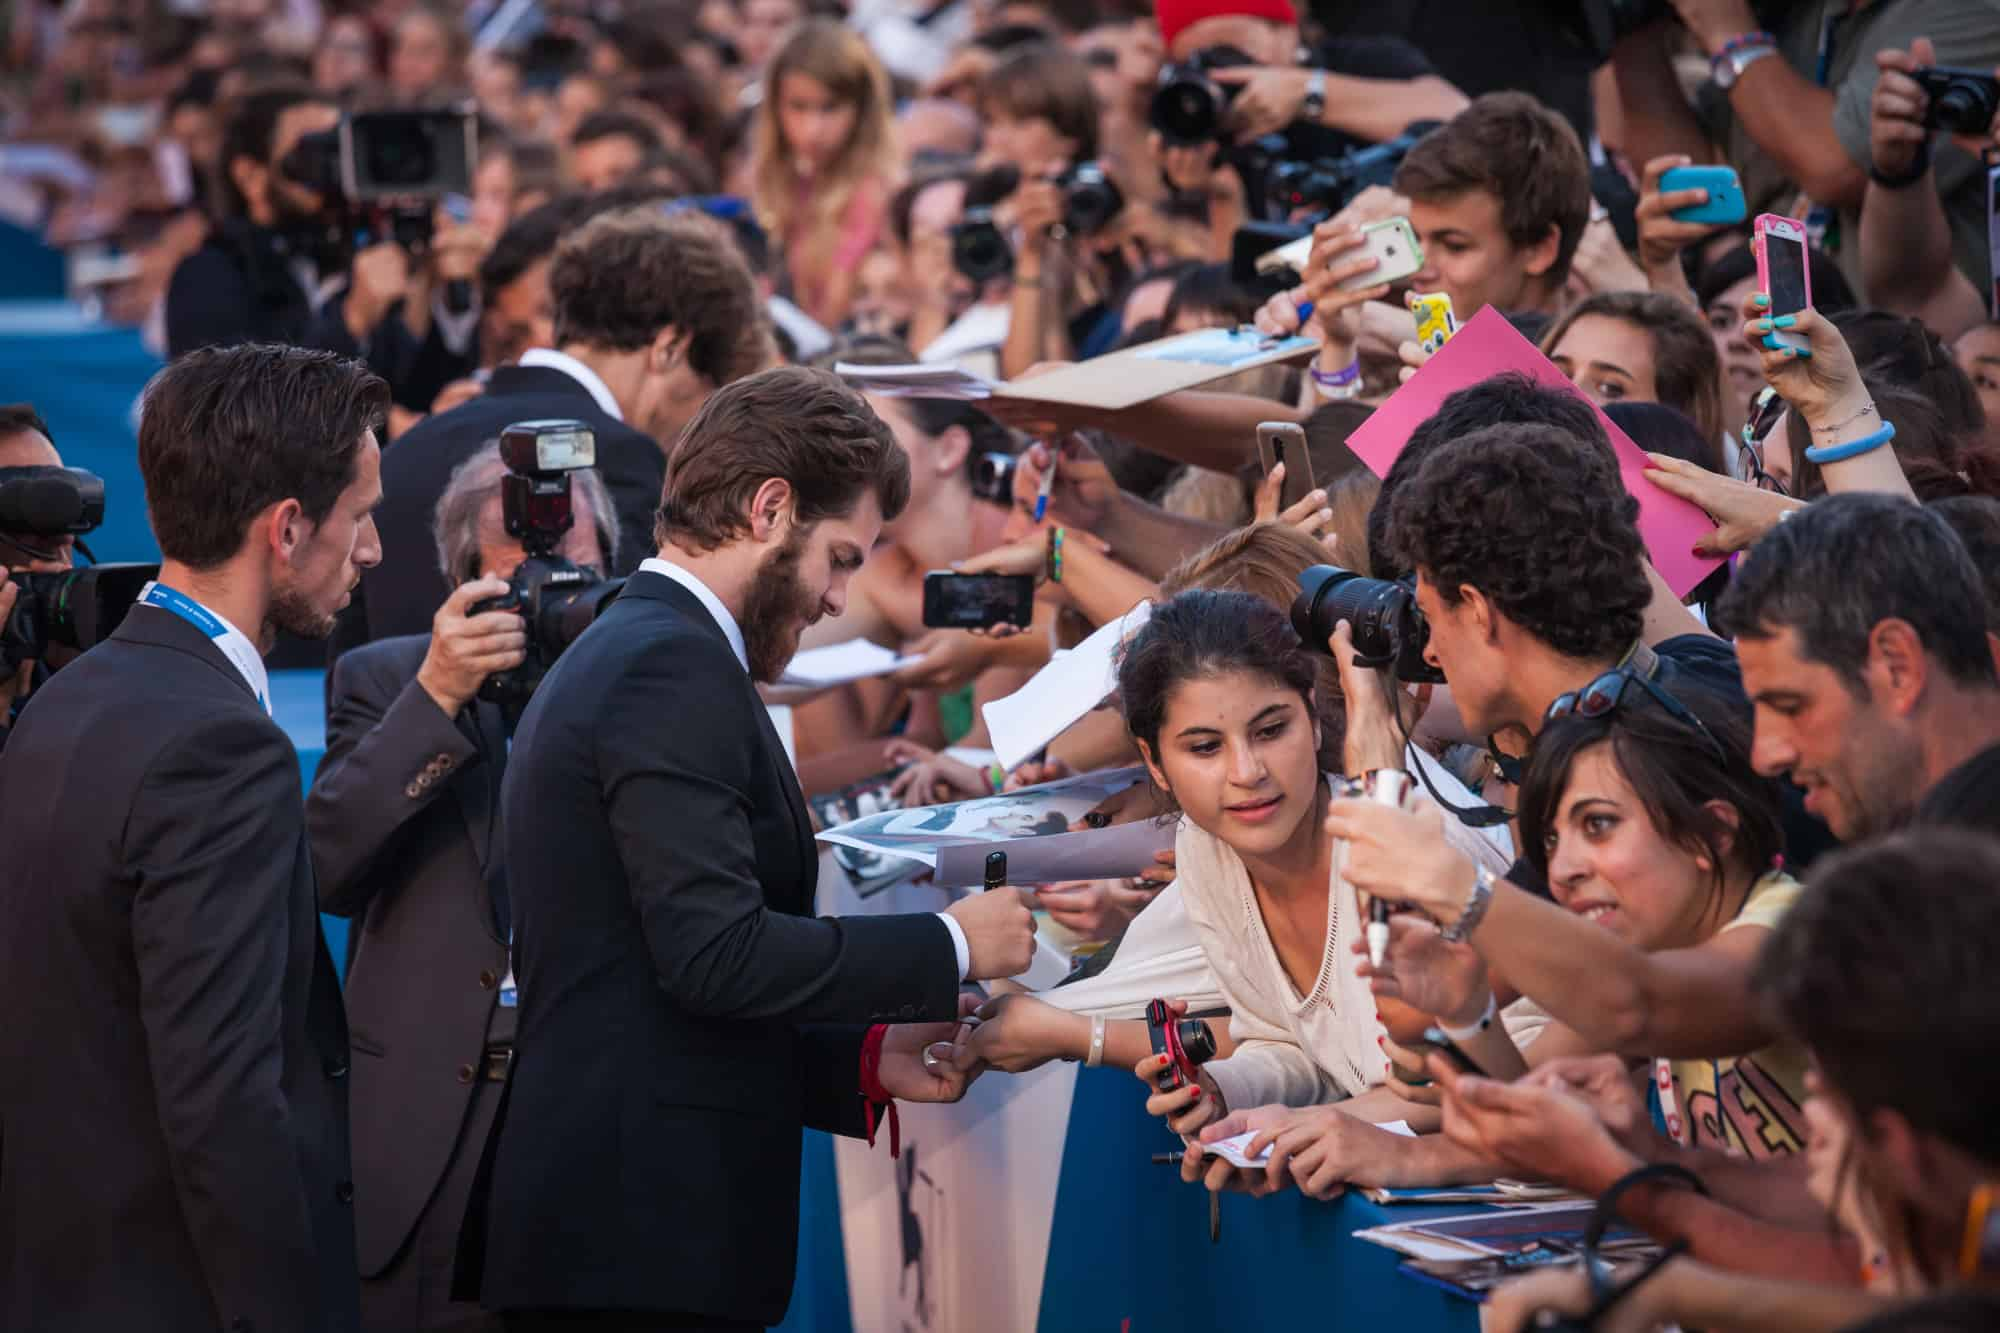 Actor Andrew Garfield signs autographs with fans at the '99 Homes' premiere during the 71st Venice Film Festival on August 29, 2014 in Venice, Italy